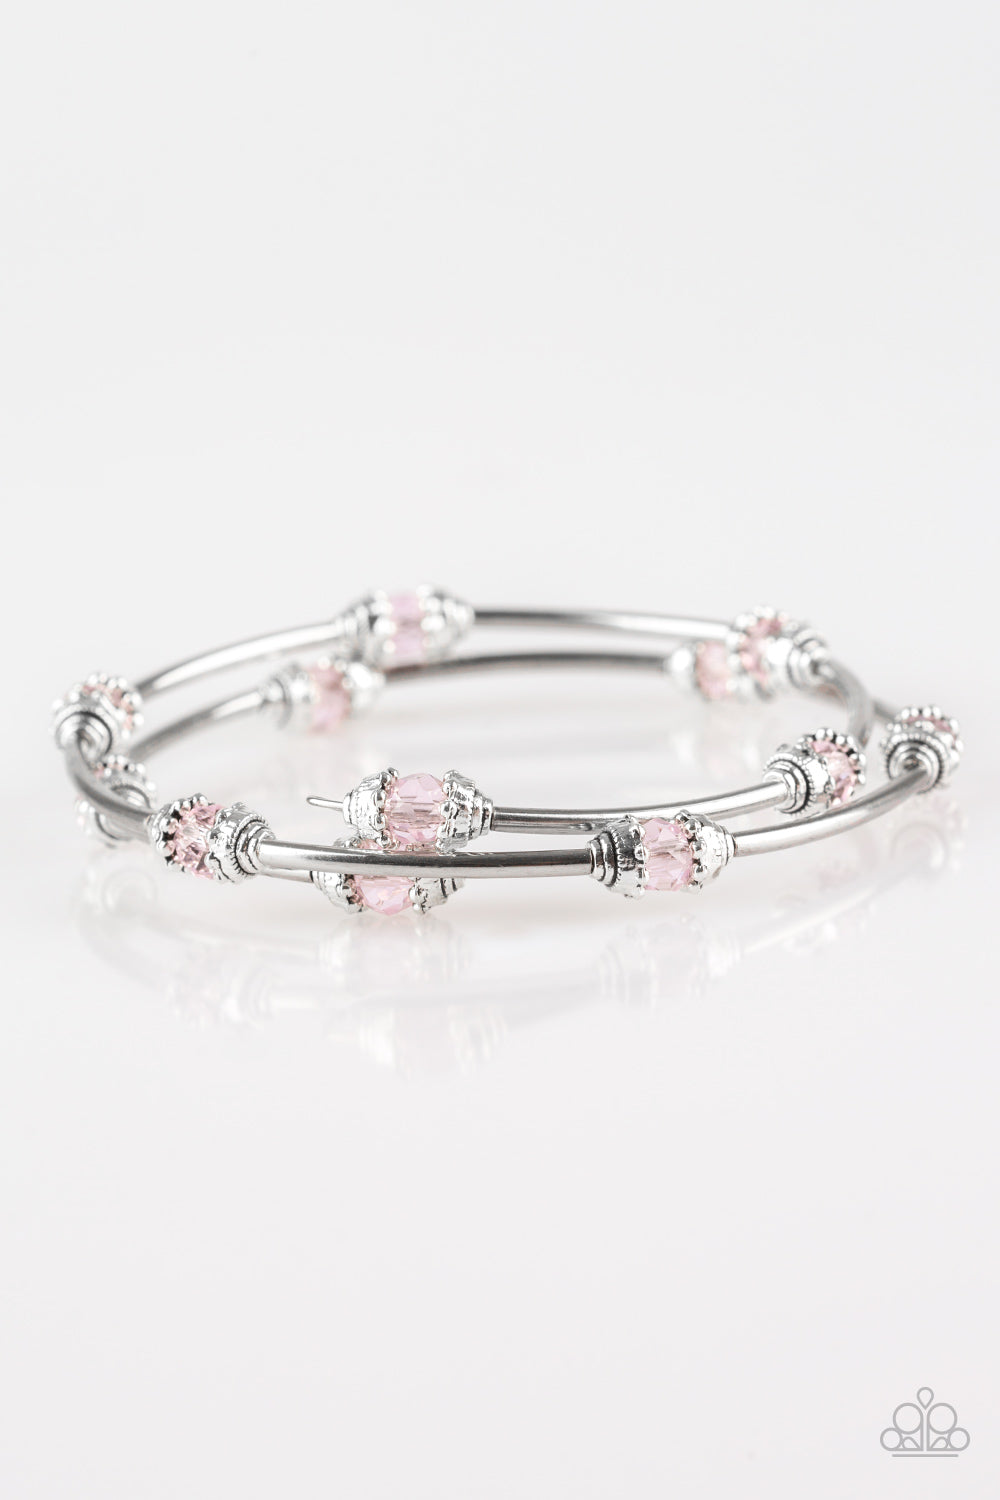 Paparazzi Accessories - Into Infinity - Pink Bracelets - JMJ Jewelry Collection